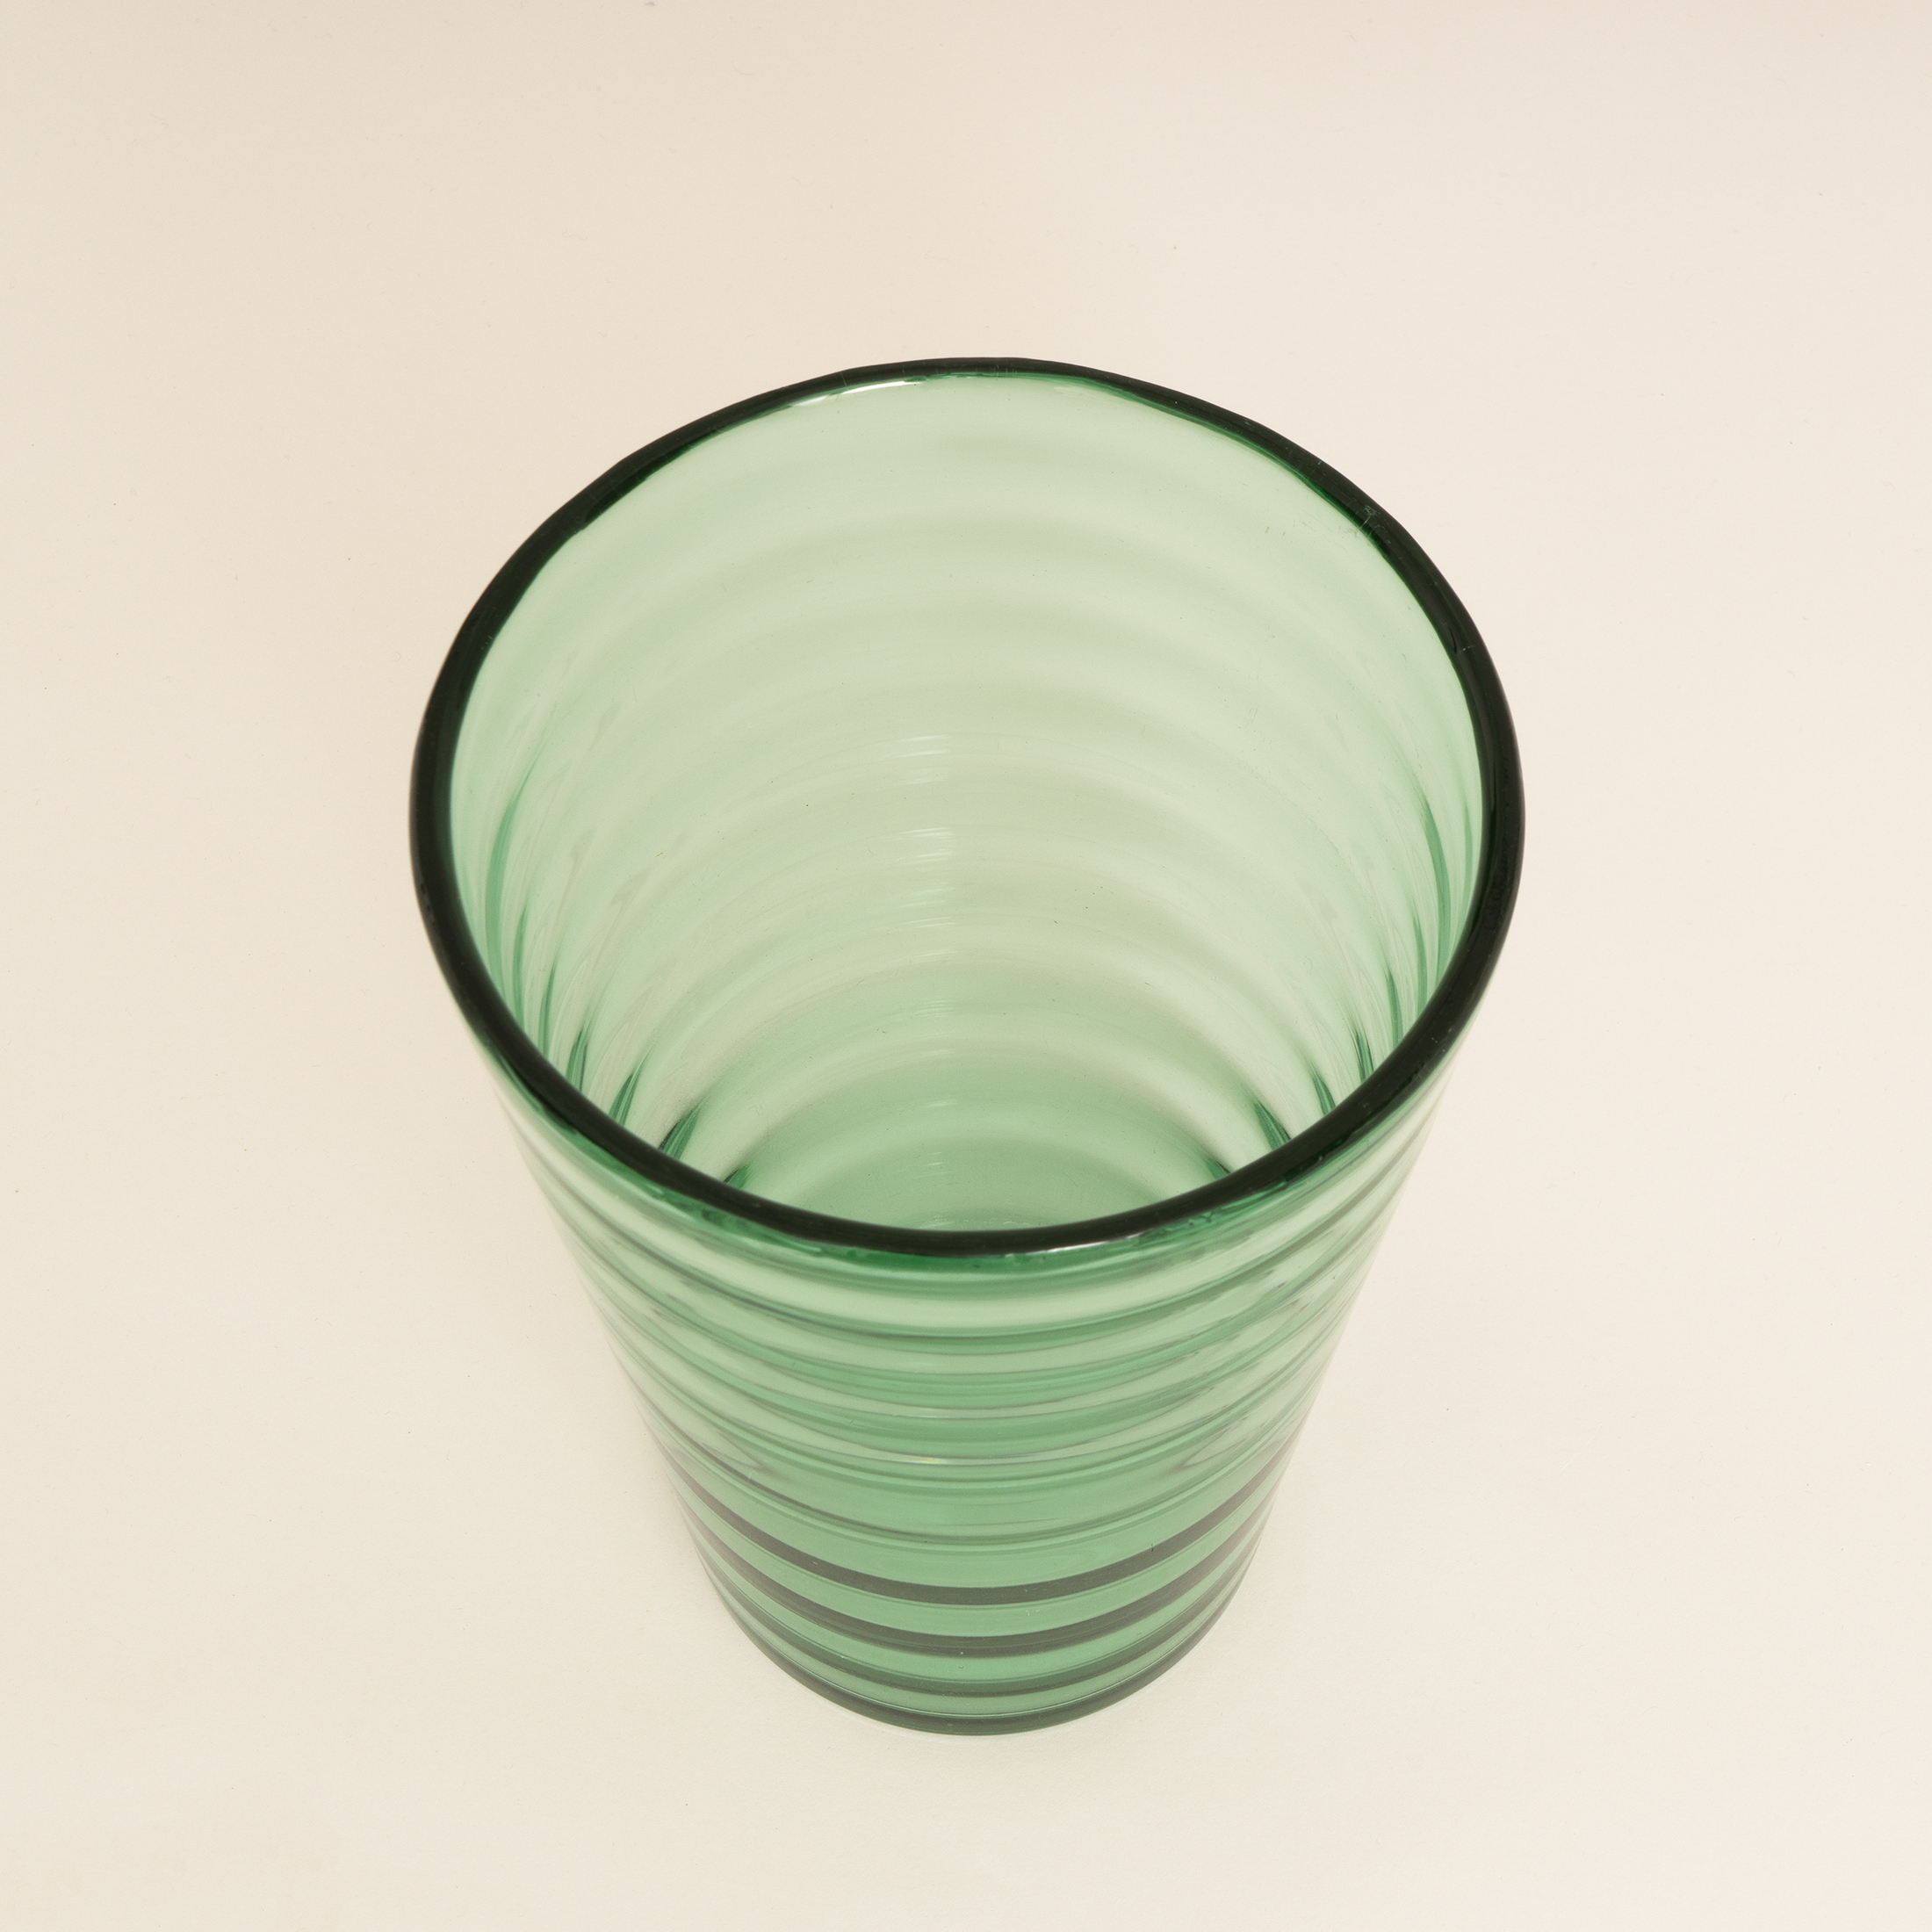 The image for Glass Vase 1 1294